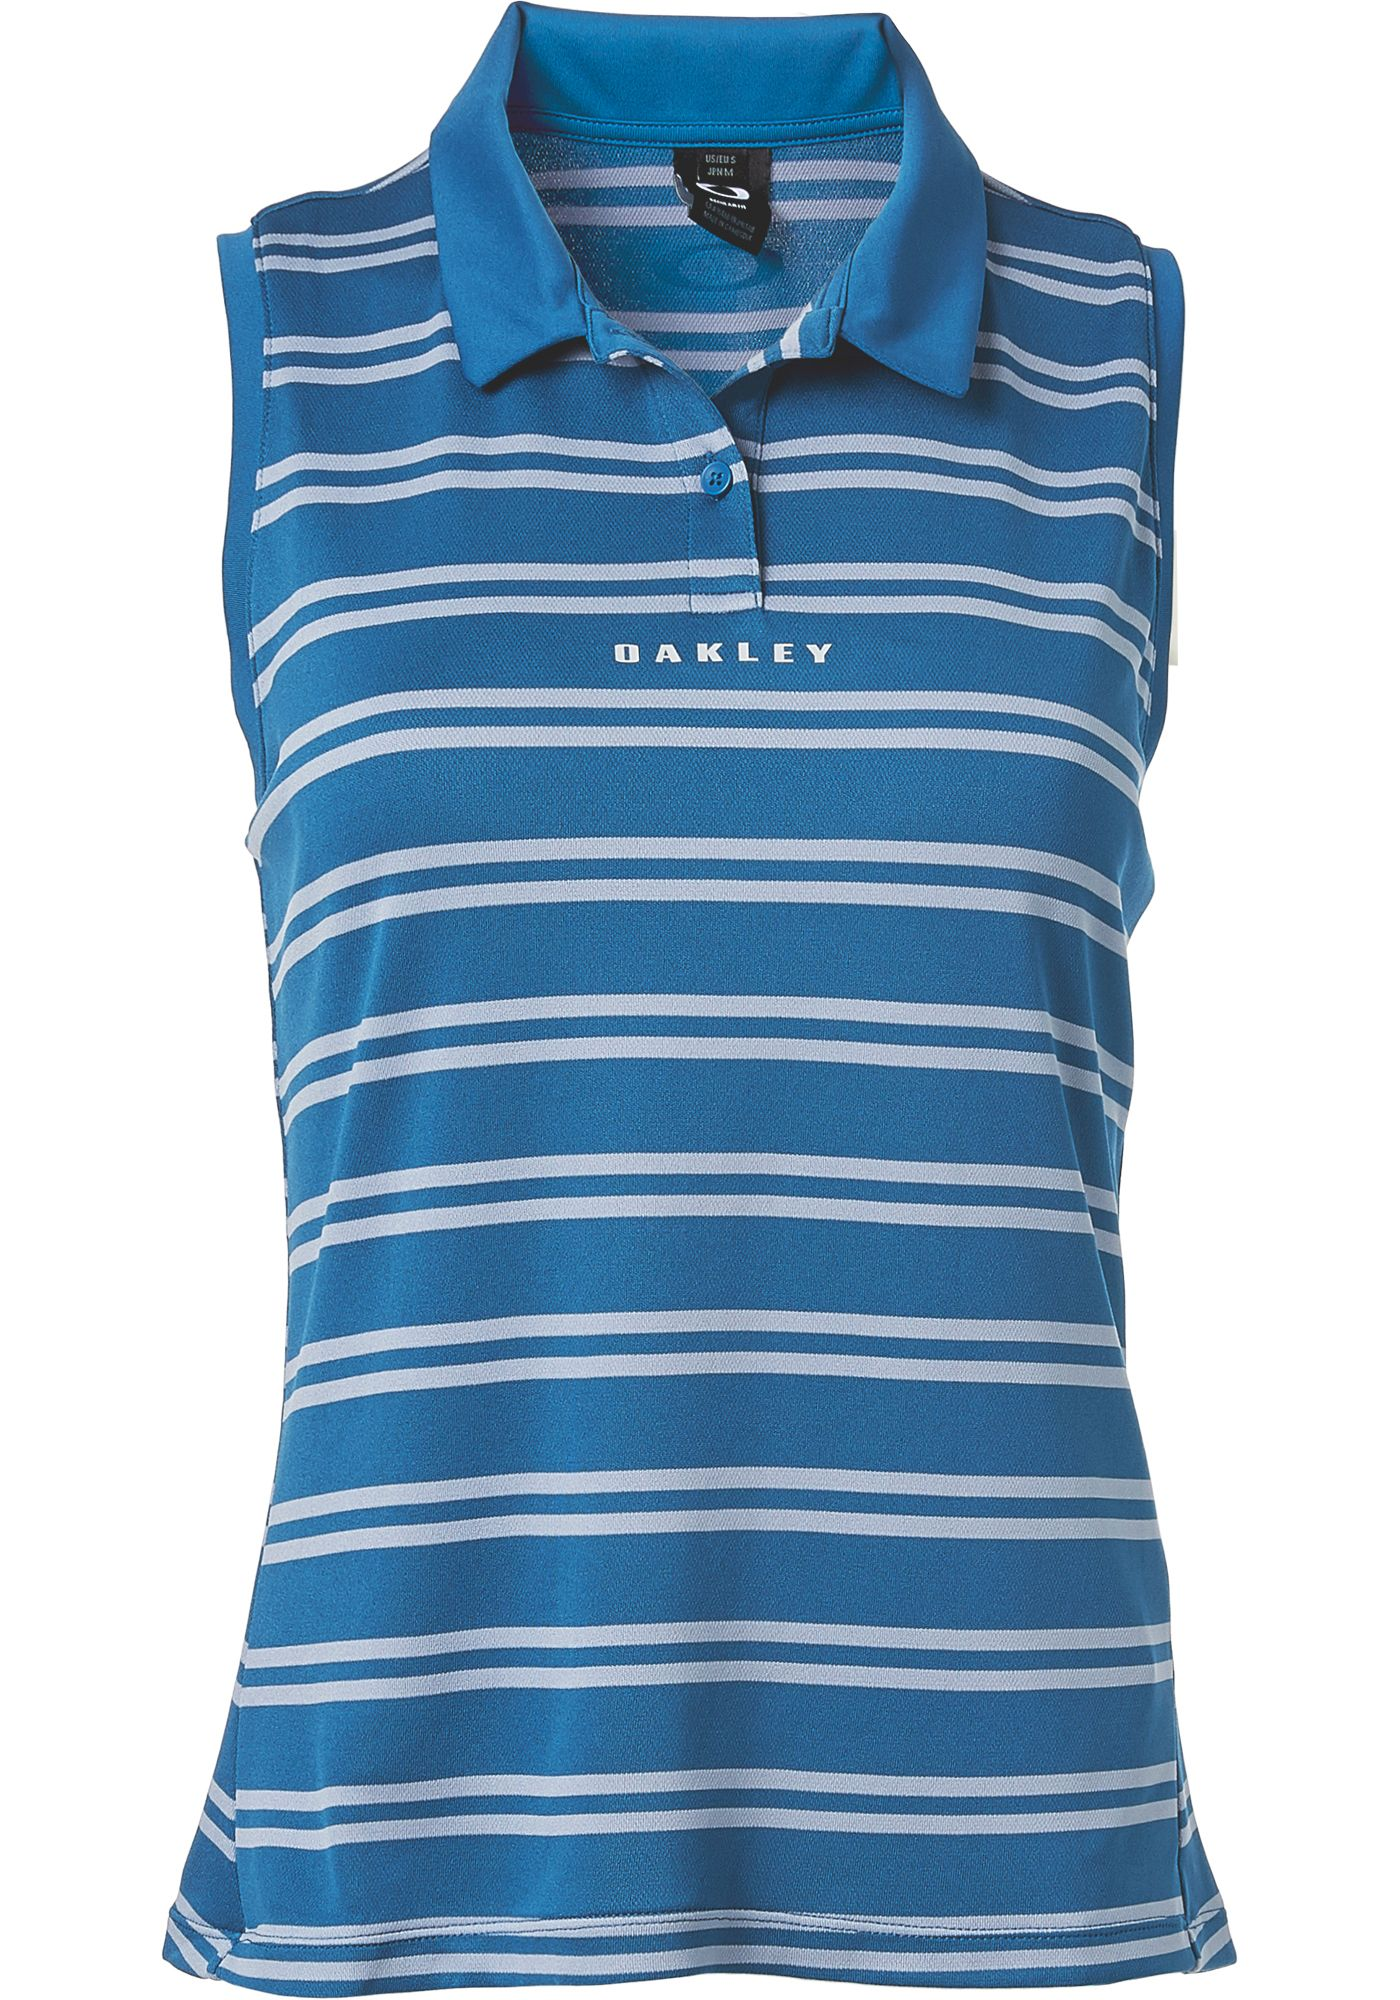 Oakley Women's Enjoy Stripe Sleeveless Golf Polo